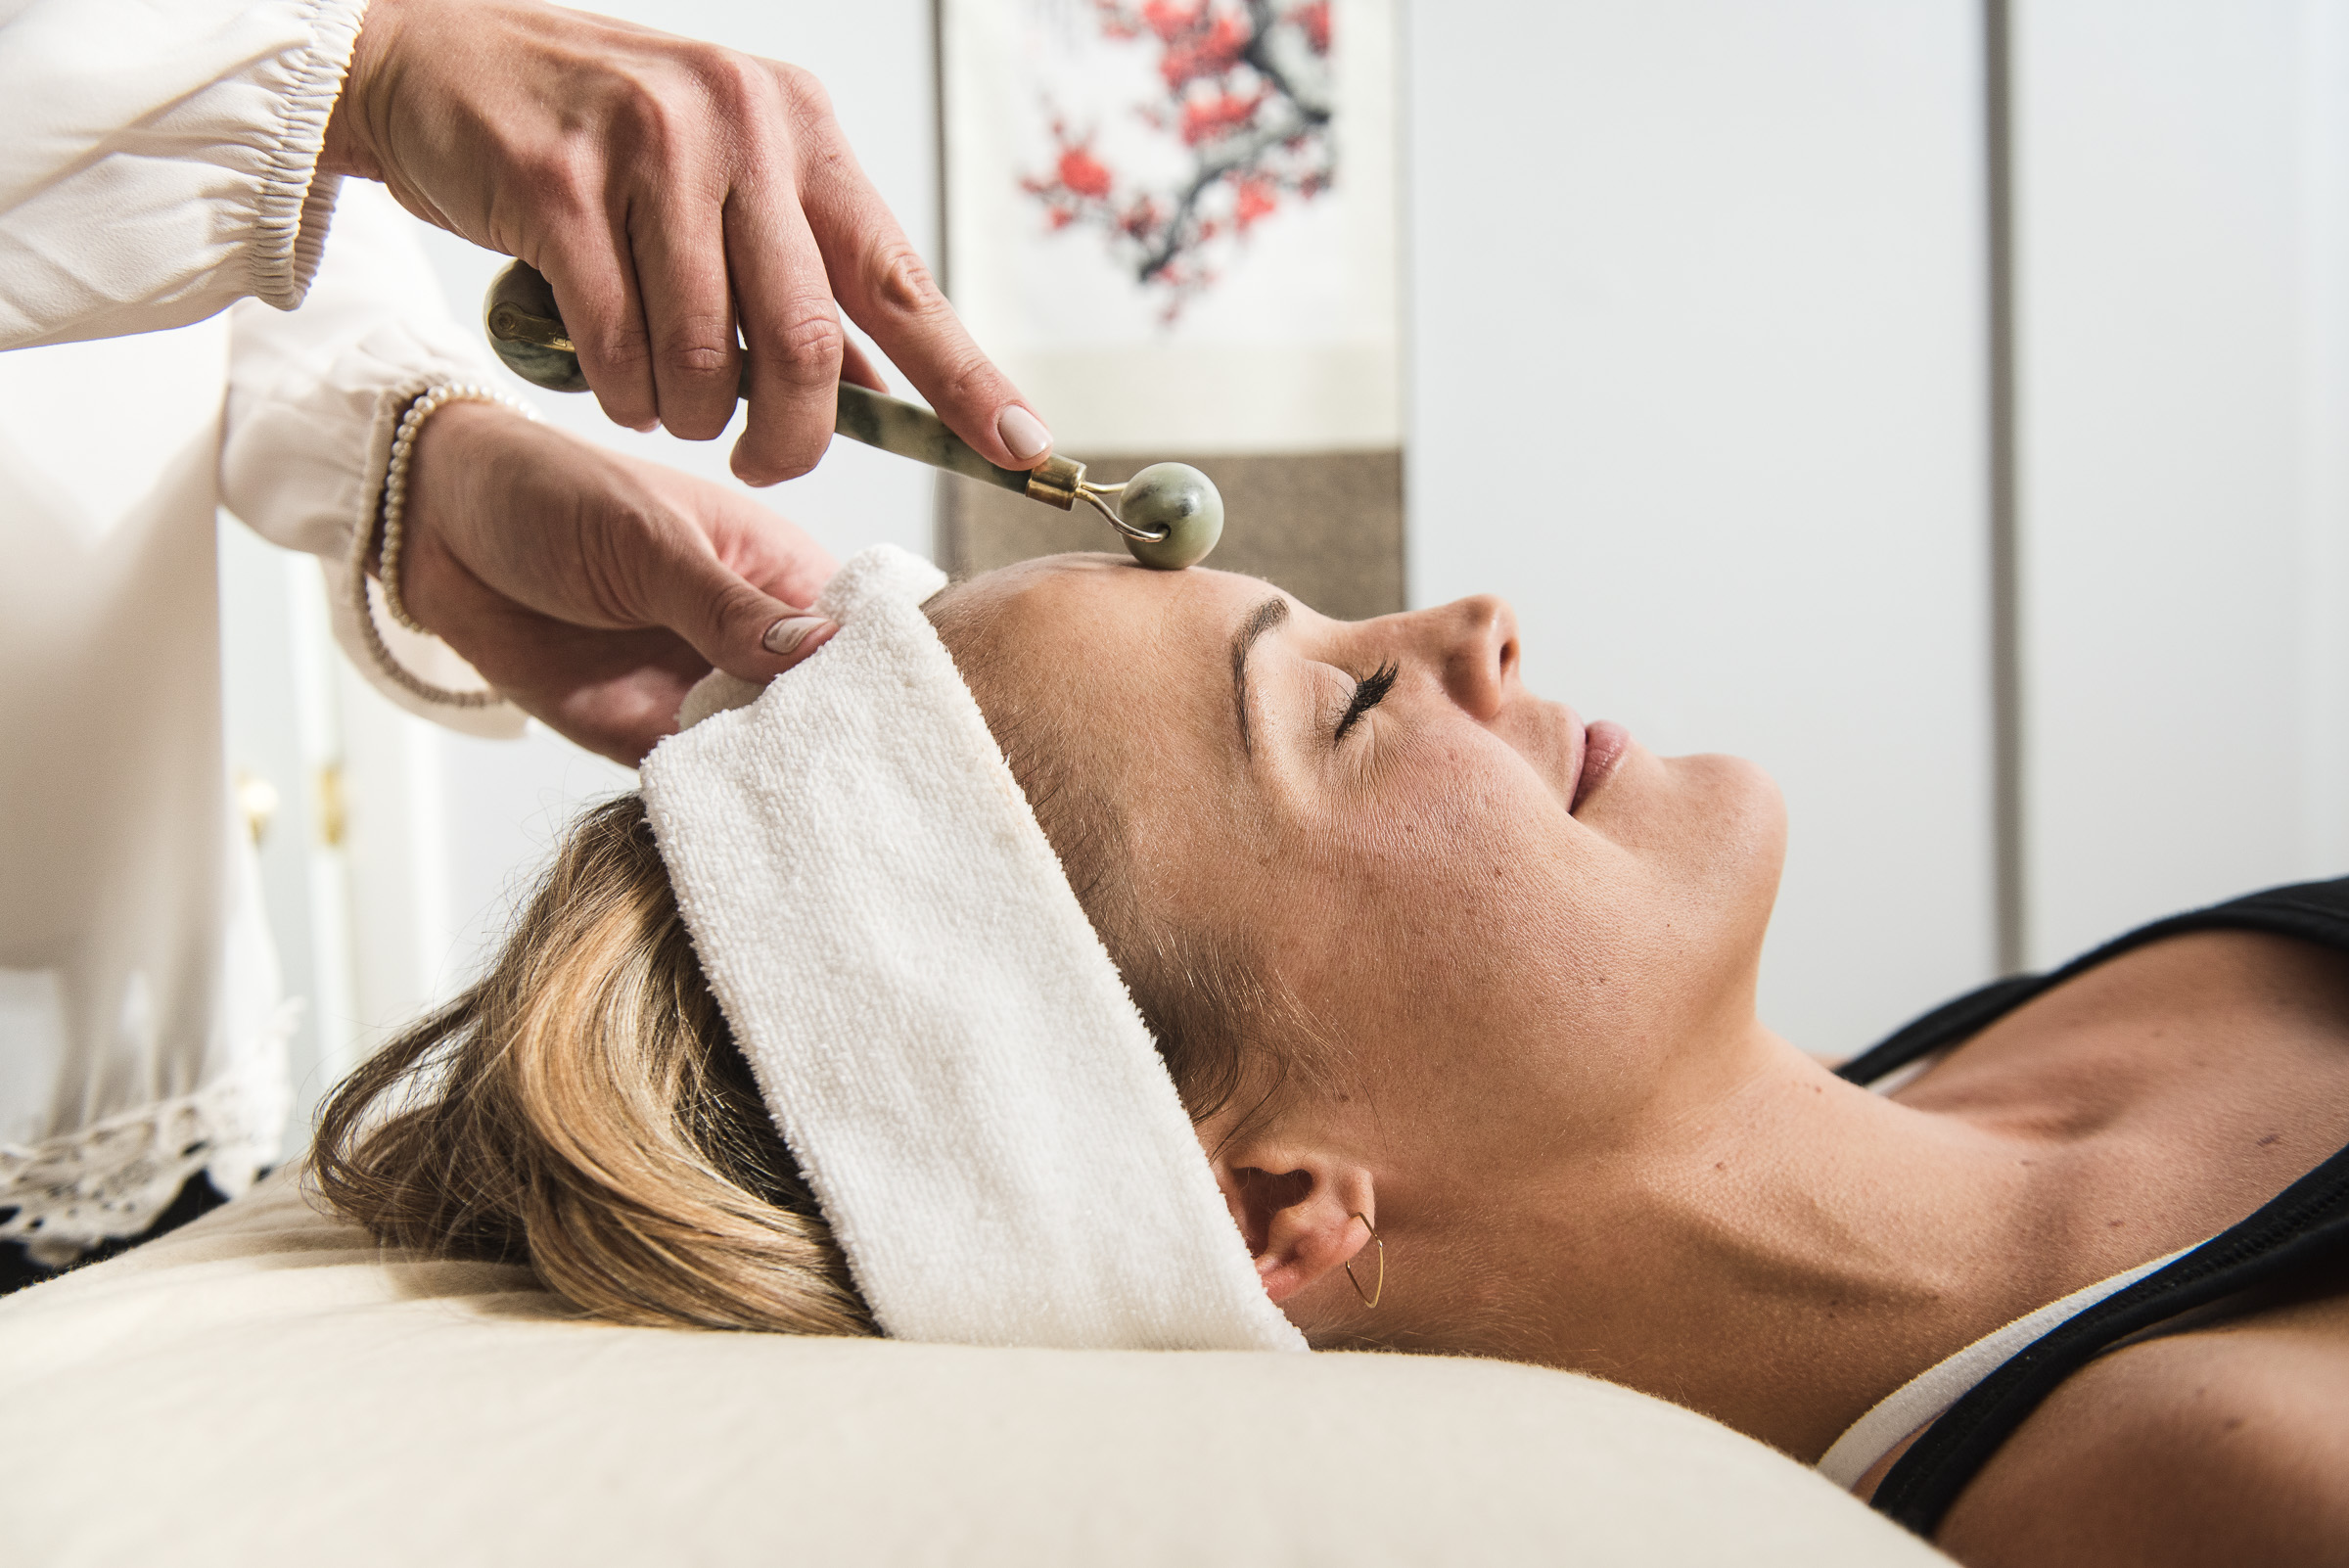 Investment: - Ultimate Facial: Includes Celluma Light therapy & facial cupping: $110 (90mins)Package of 10 Ultimate Facial Treatments: $1000 (Save $100)Facial Rejuvenation: $95 (60mins)Package of 10 Basic Facial Rejuvenation Treatments: $900 (Save $50)Recommendation is 2 treatments per week for 5 weeks followed by monthly maintenance.